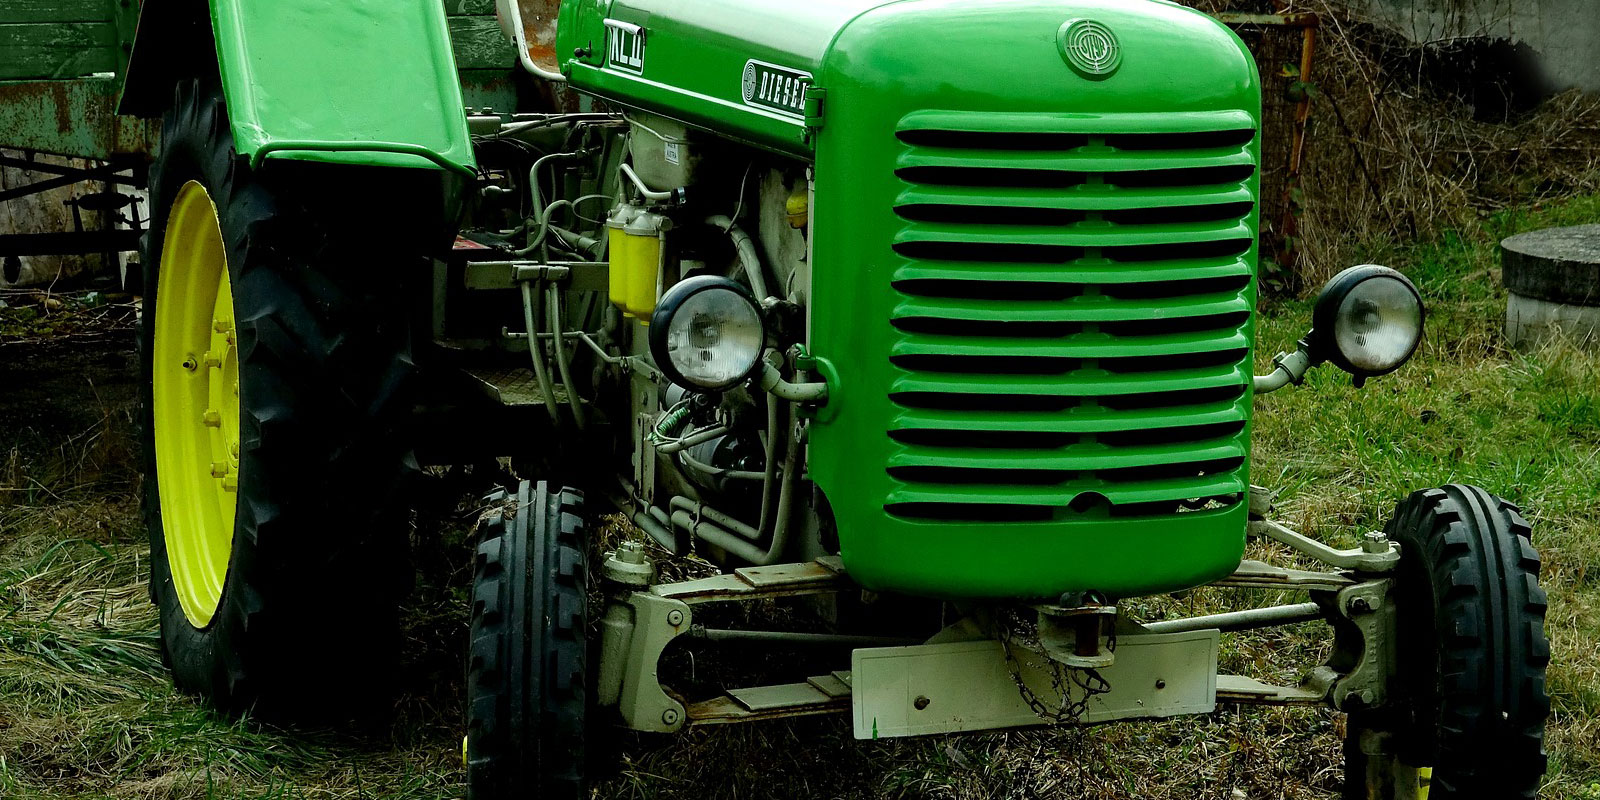 Shop Tractor Parts Online | Significant Savings over OEM